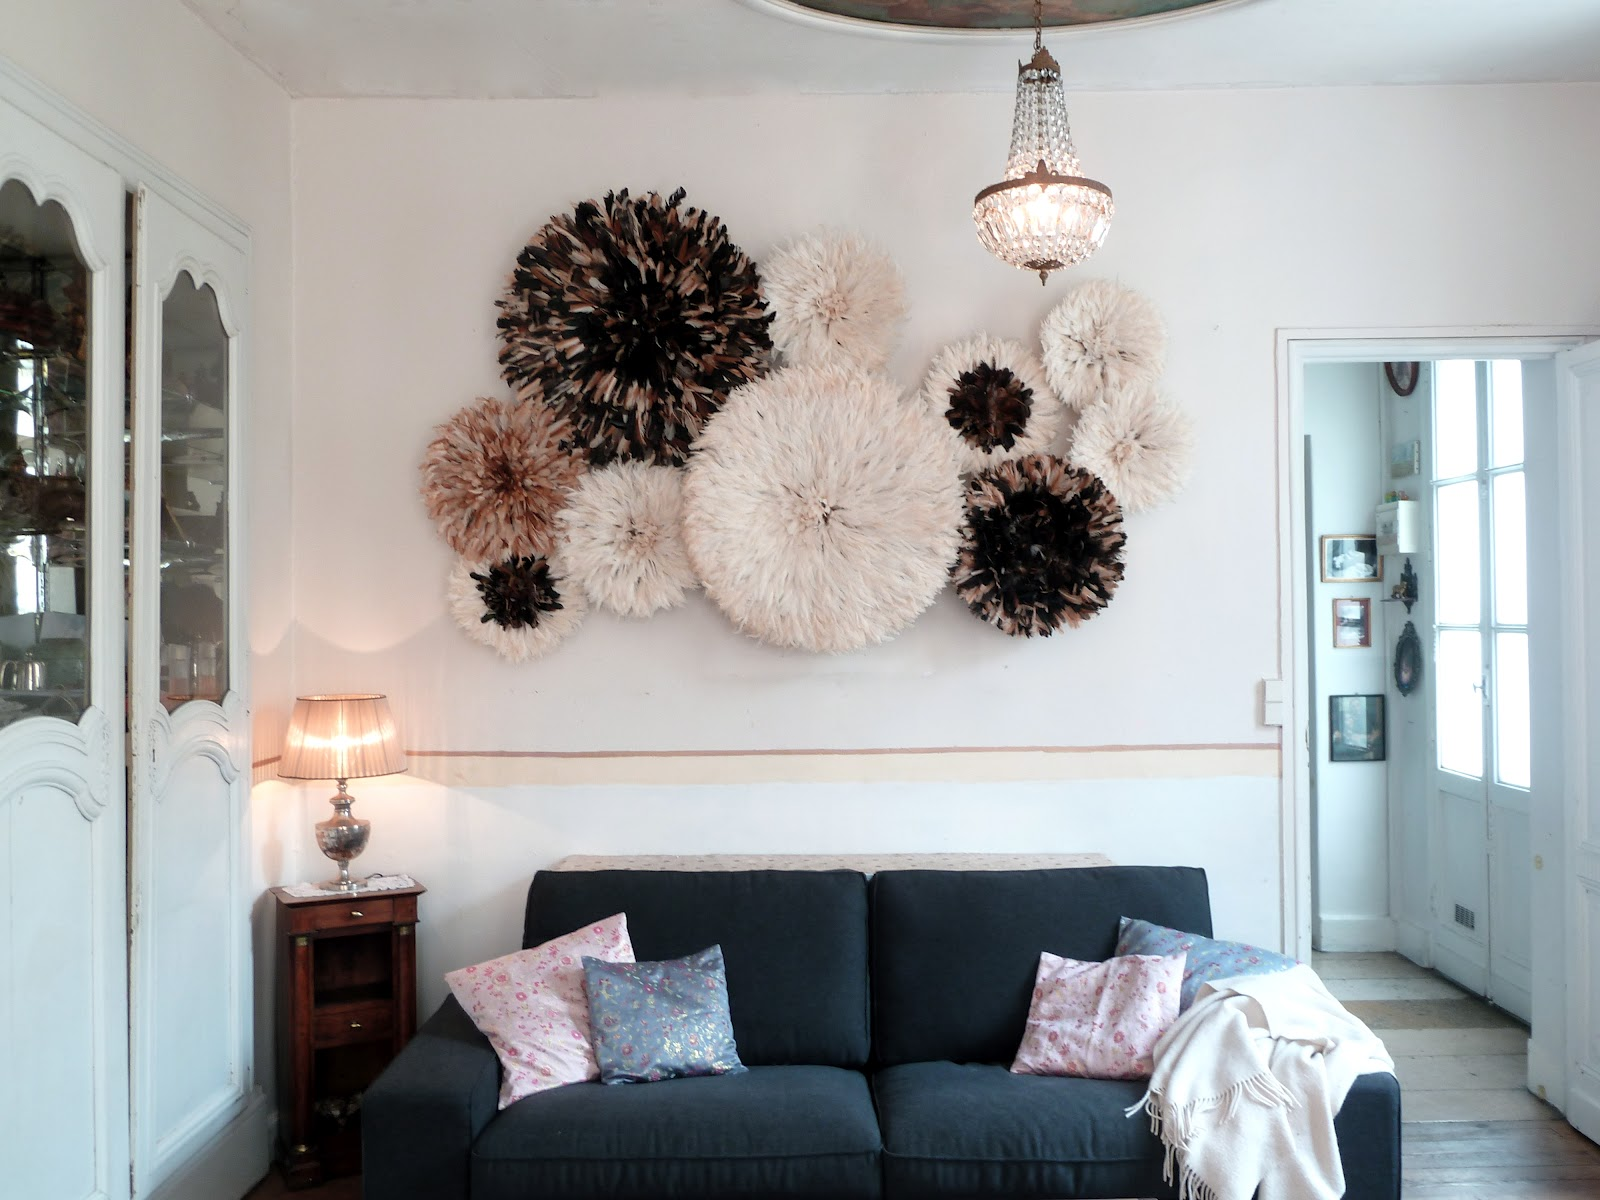 How To Decorate With Wall Art: A Love Affair With Design: THE CAMEROON